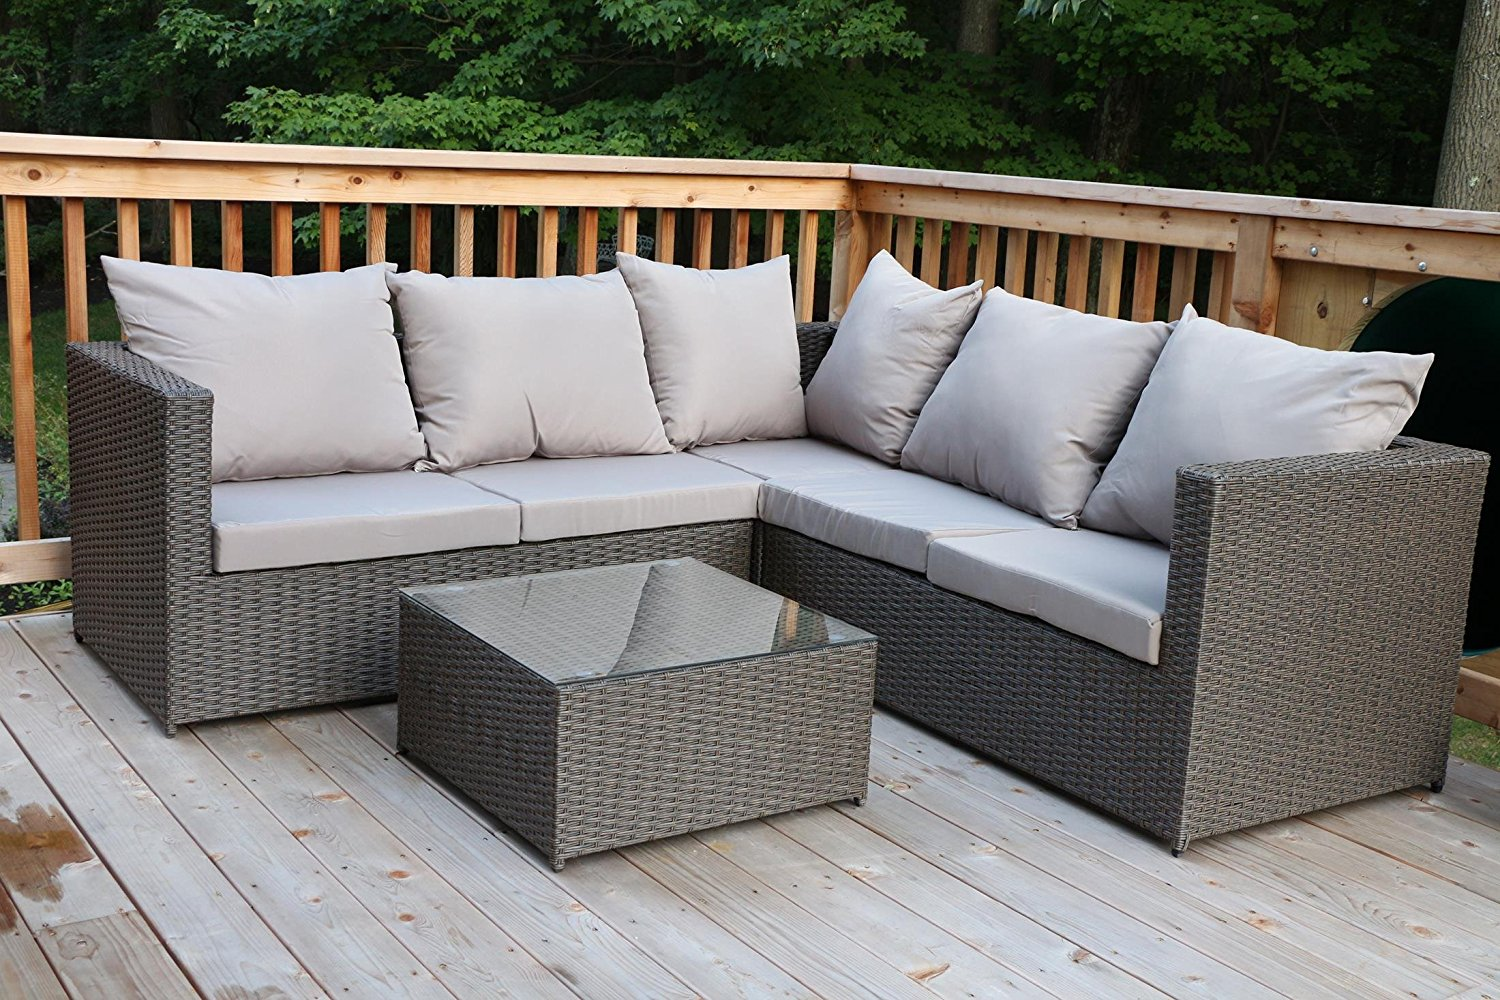 simple ideas for outdoor patio designs cool ideas for home